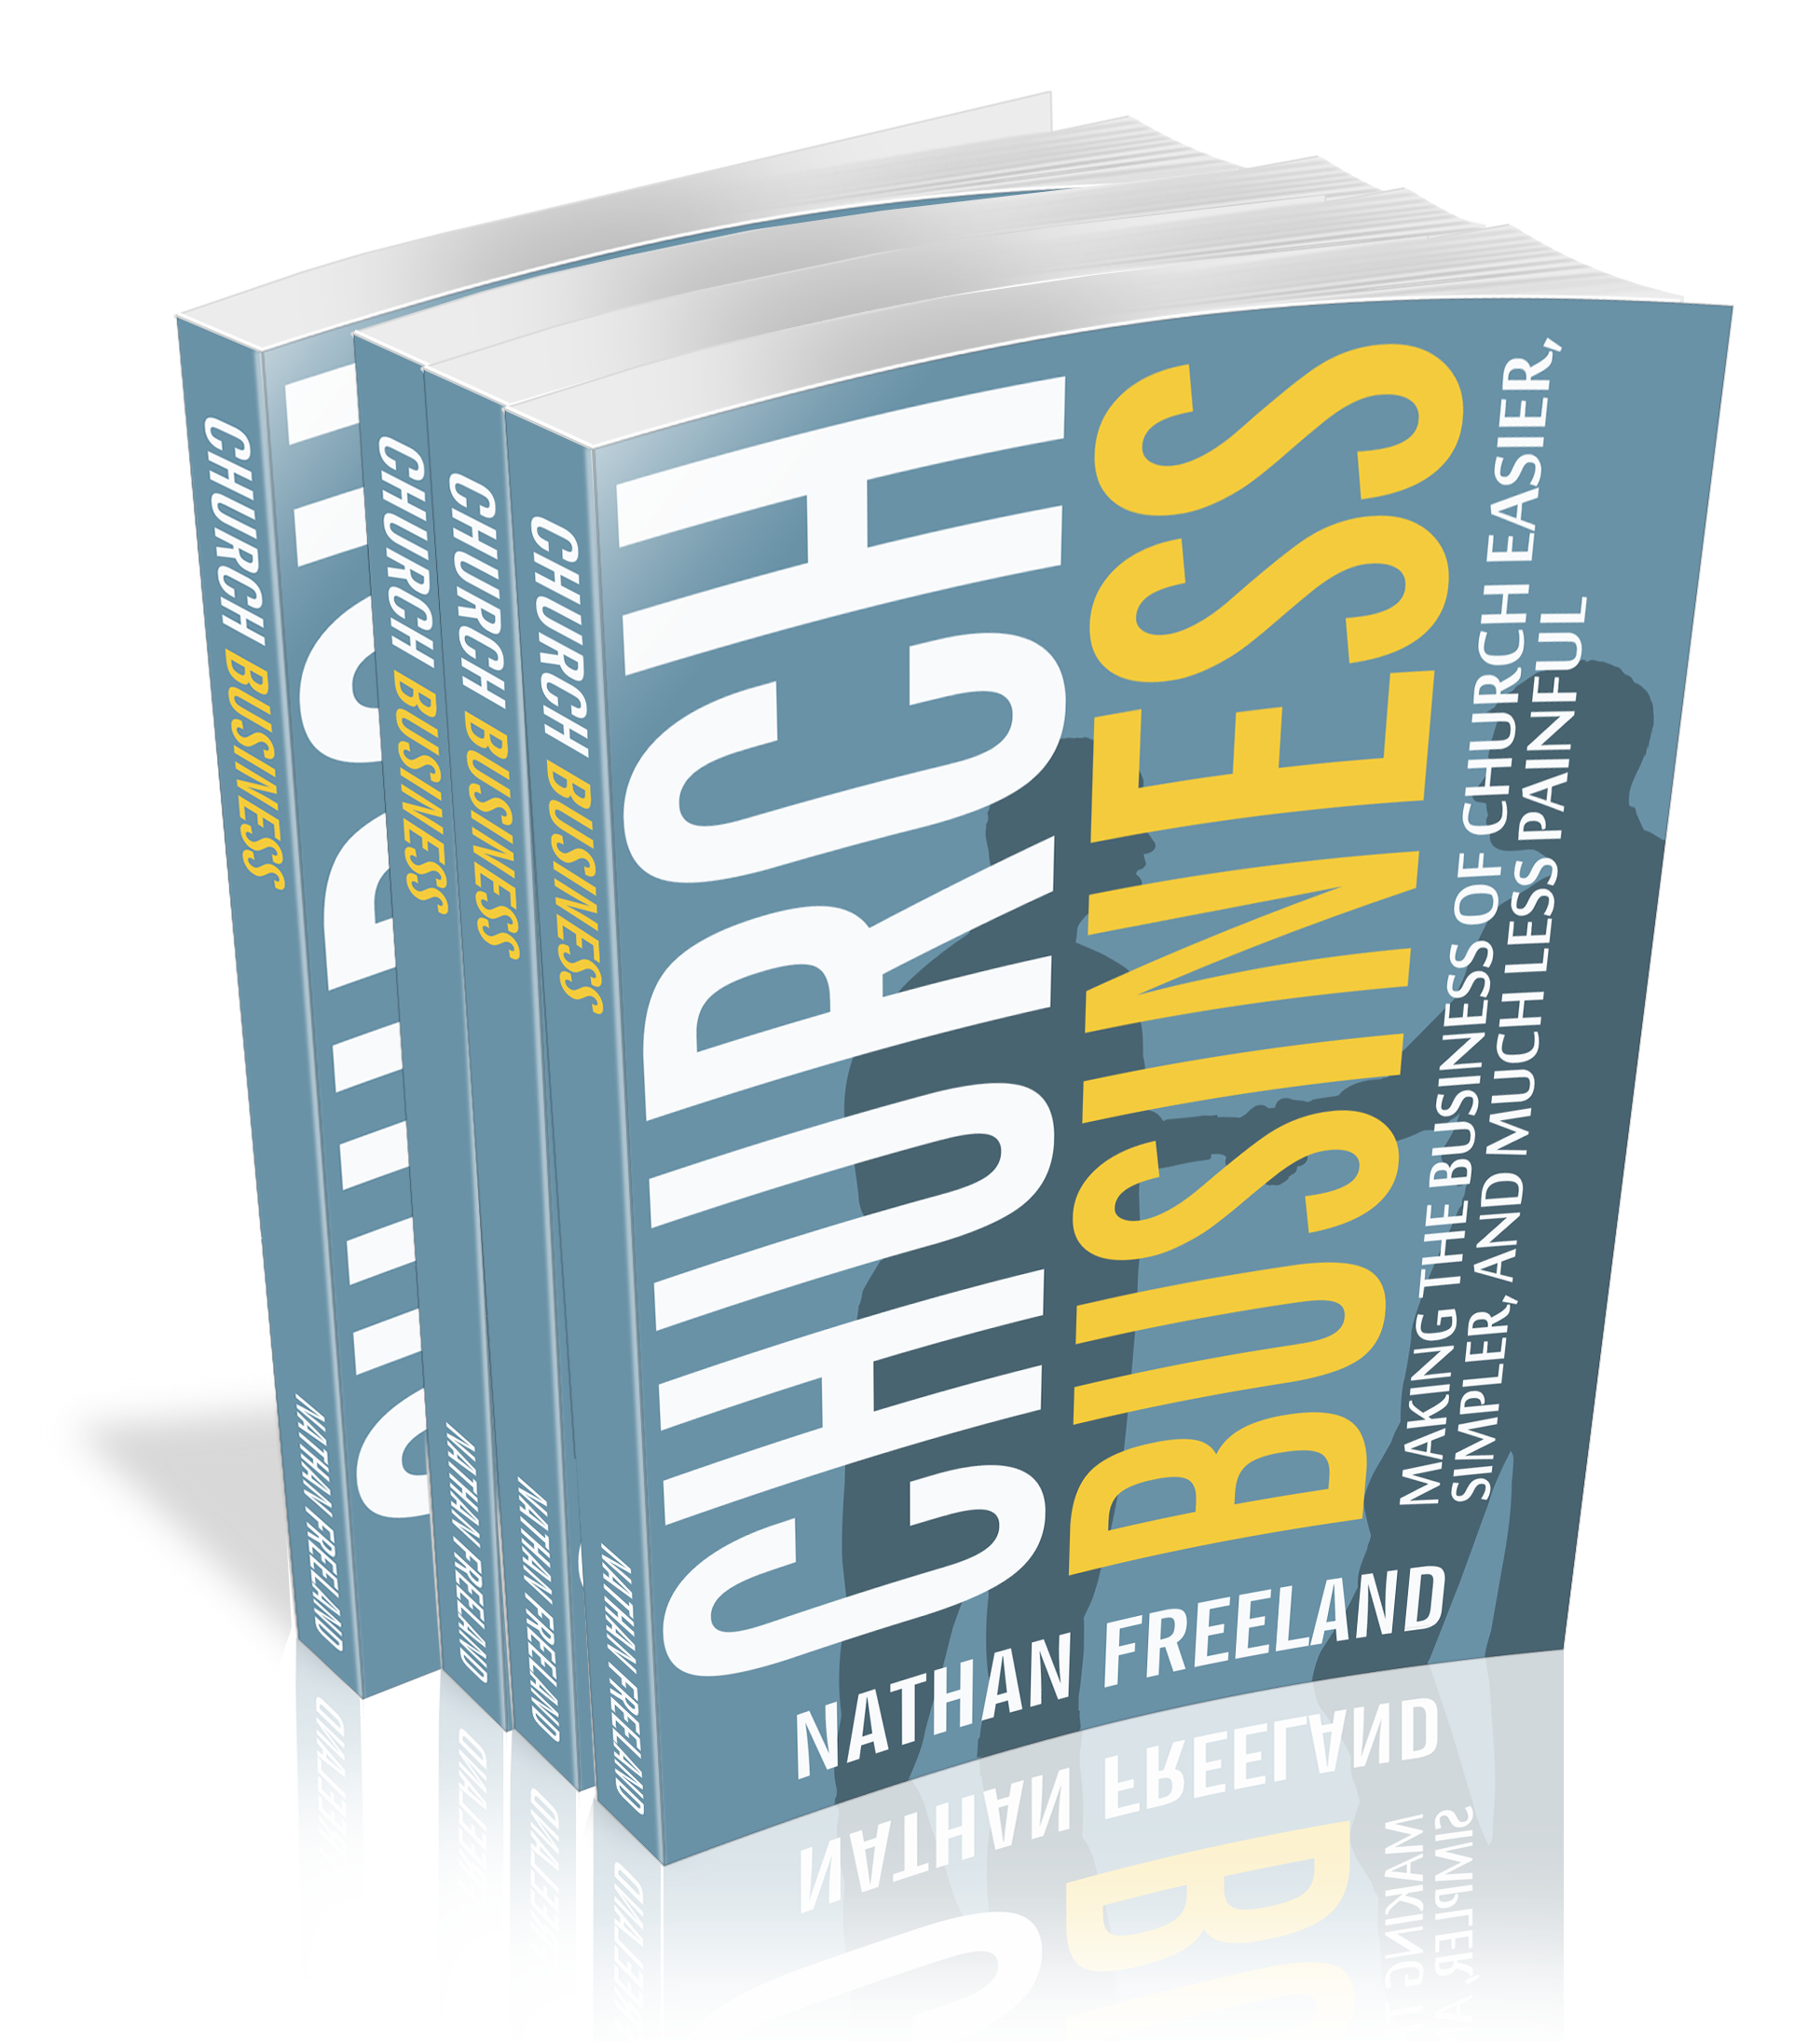 CHURCH_BUSINESS_3D_BOOKS